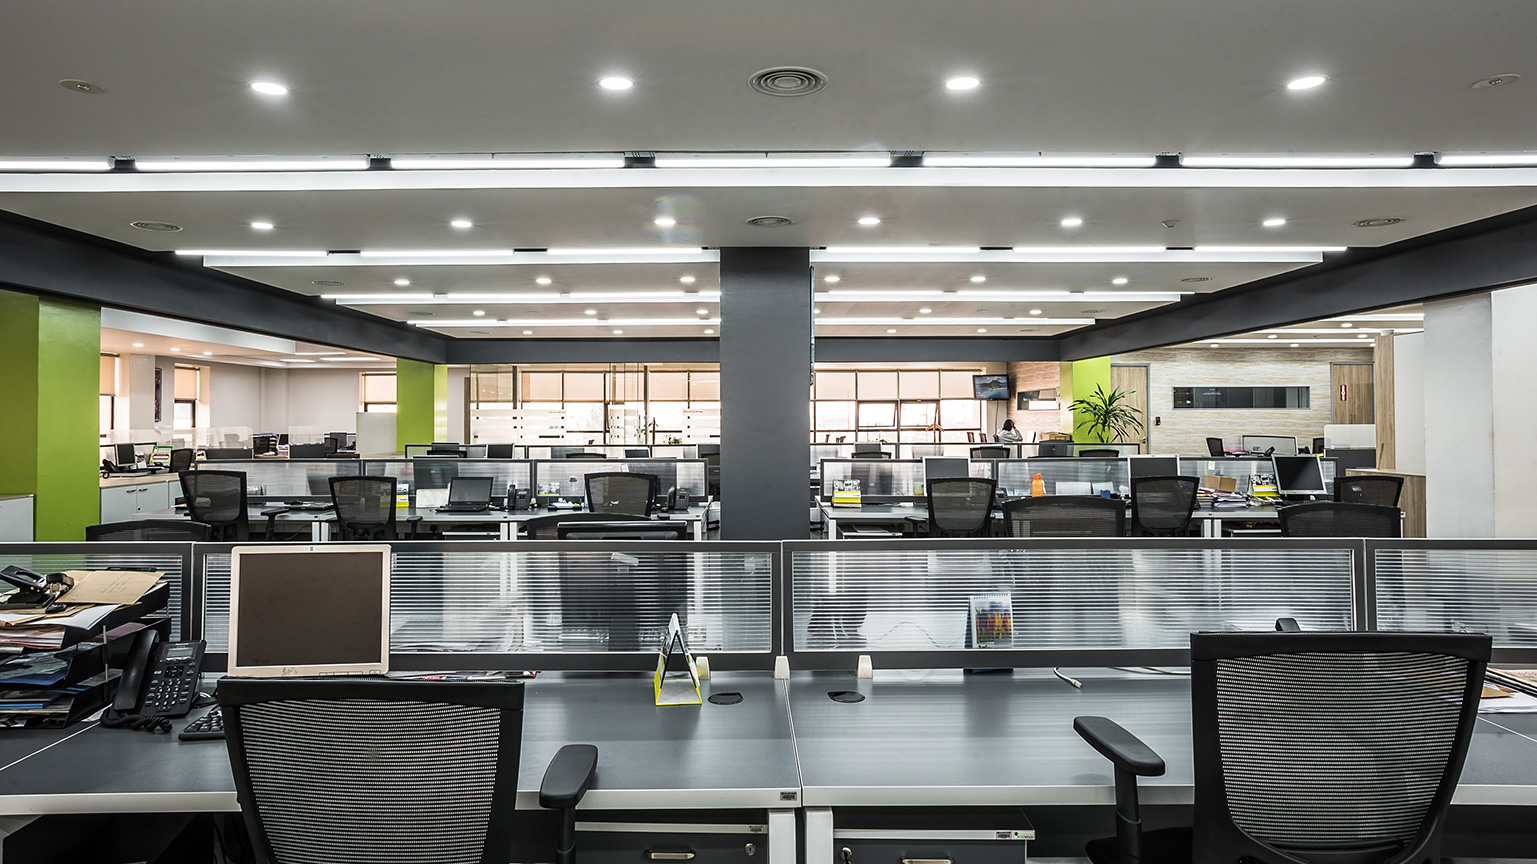 Case Studies - Our Interior Design & Fit Out Projects